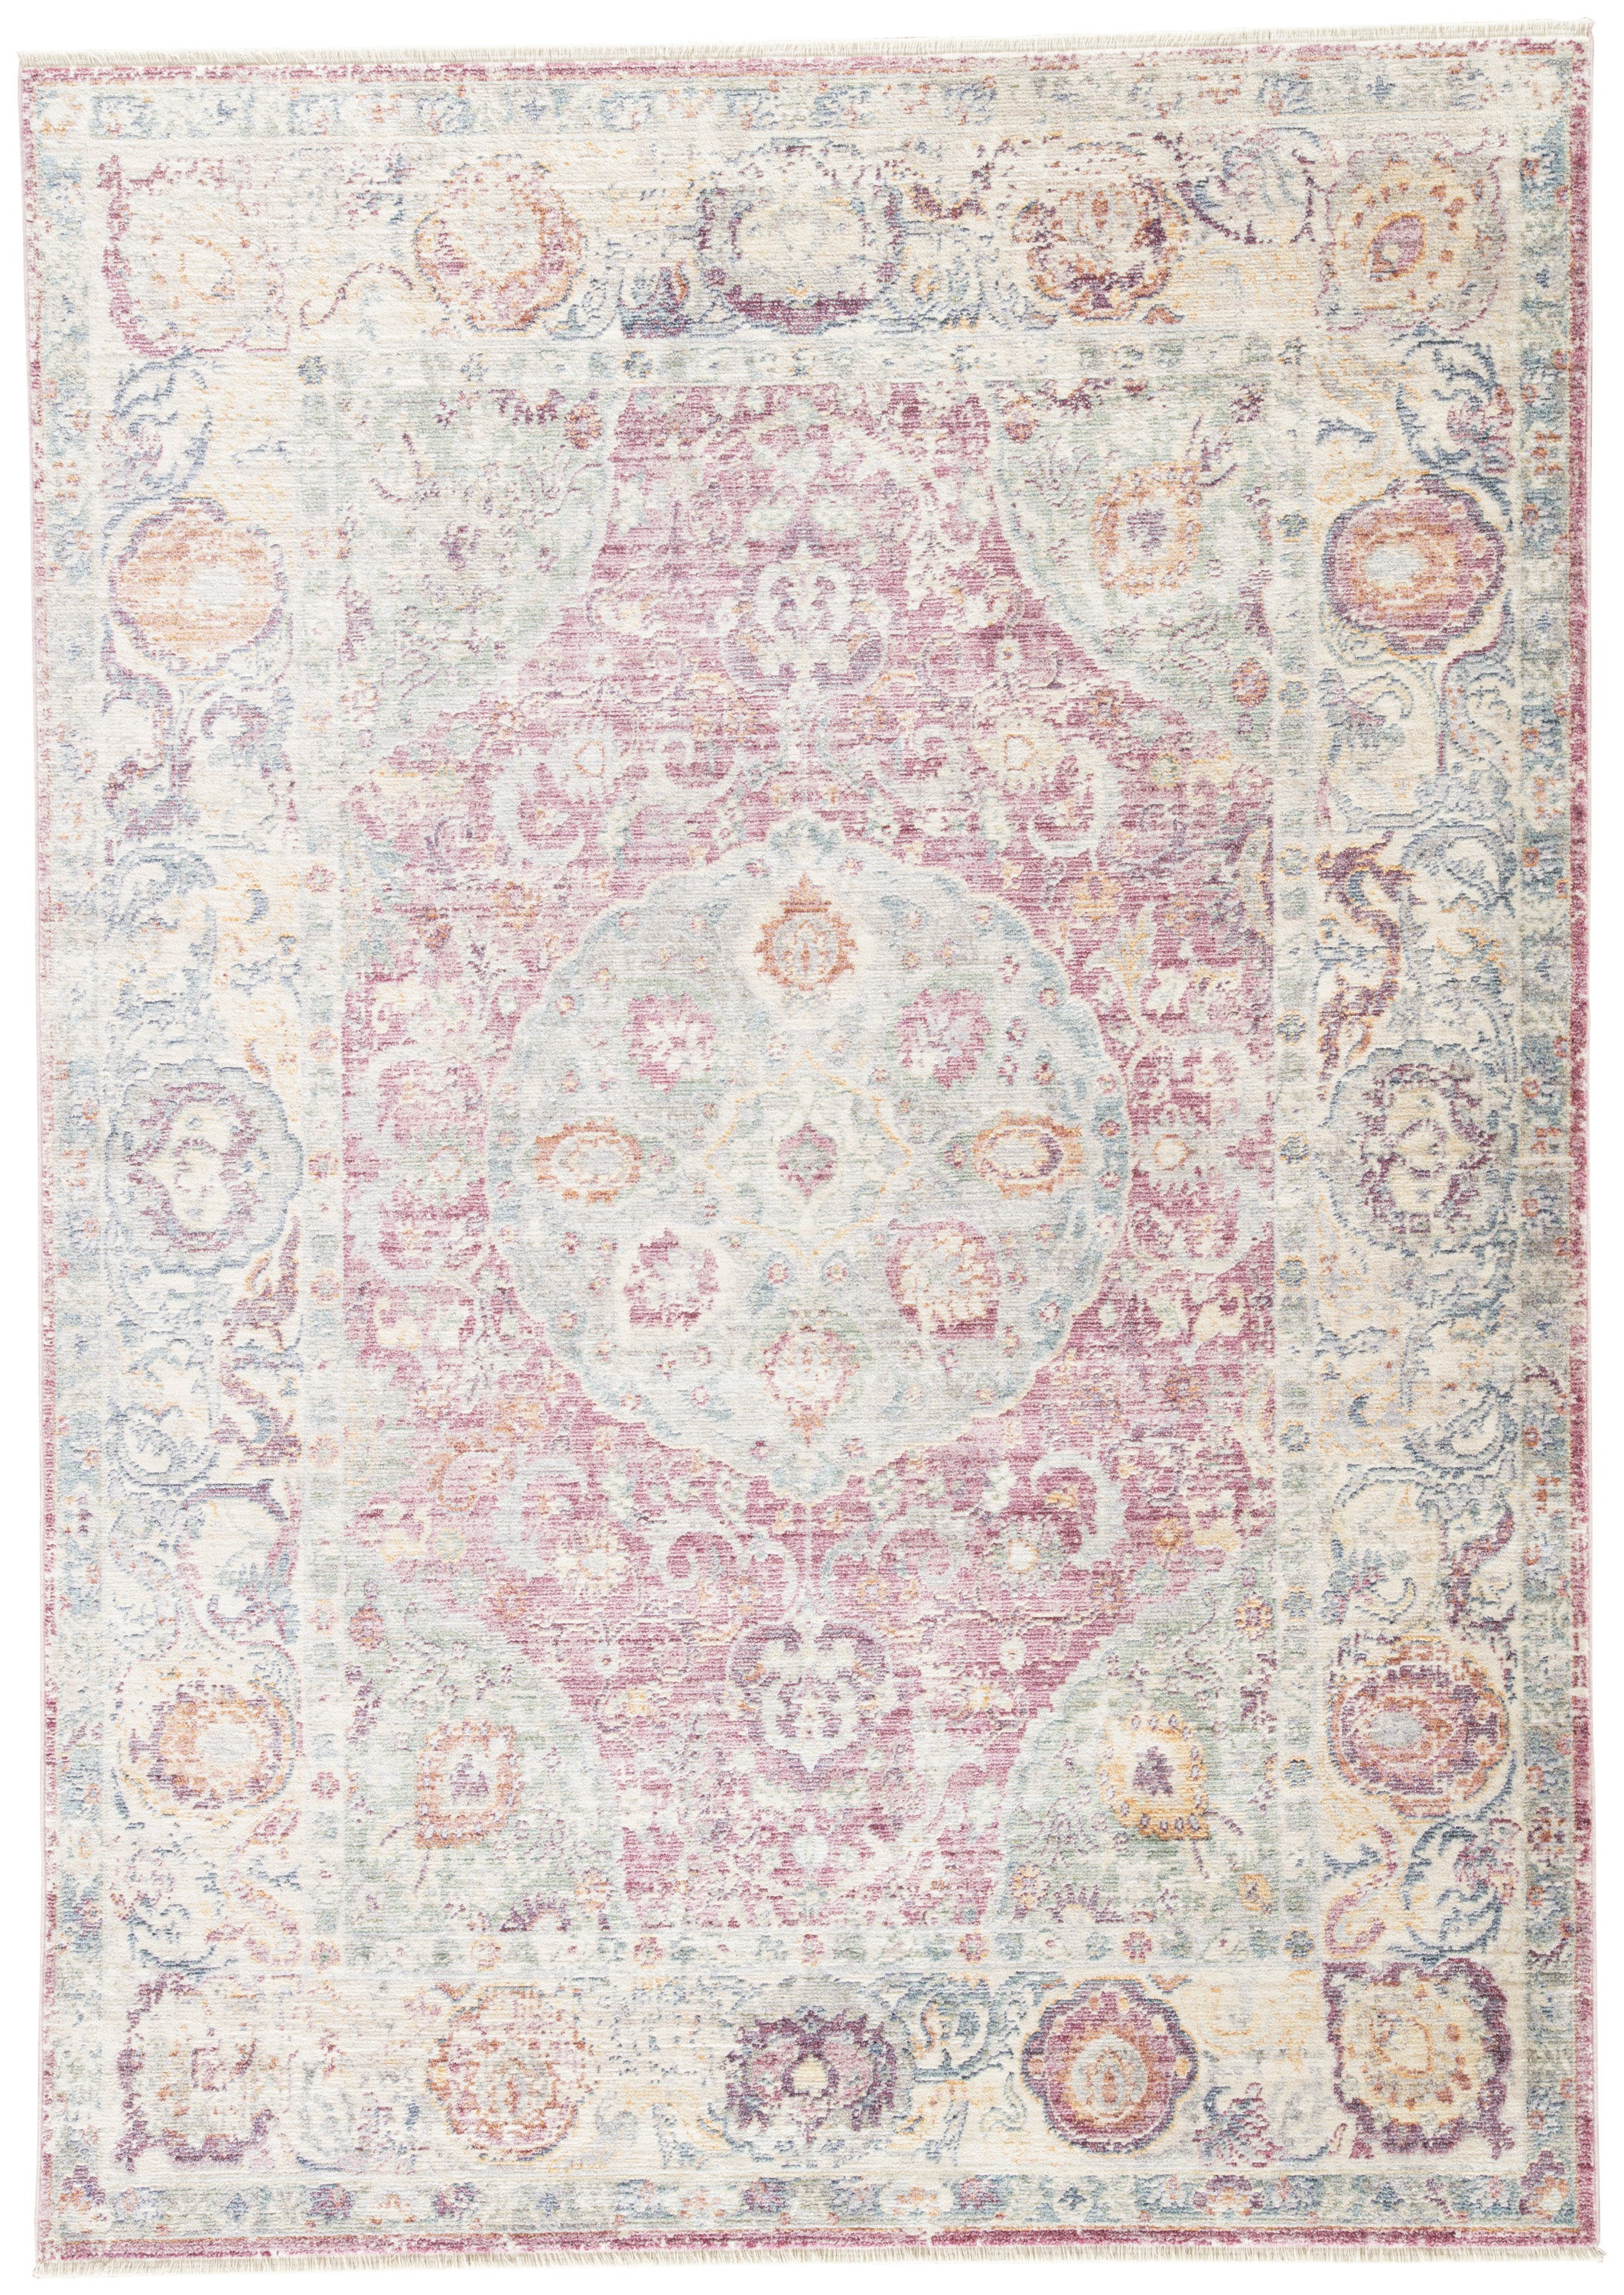 Rectangle Pink Medallion Machine Made Synthetics Contemporary recommended for Bedroom, Bathroom, Kids, Dining Room, Office, Hallway, Living Room